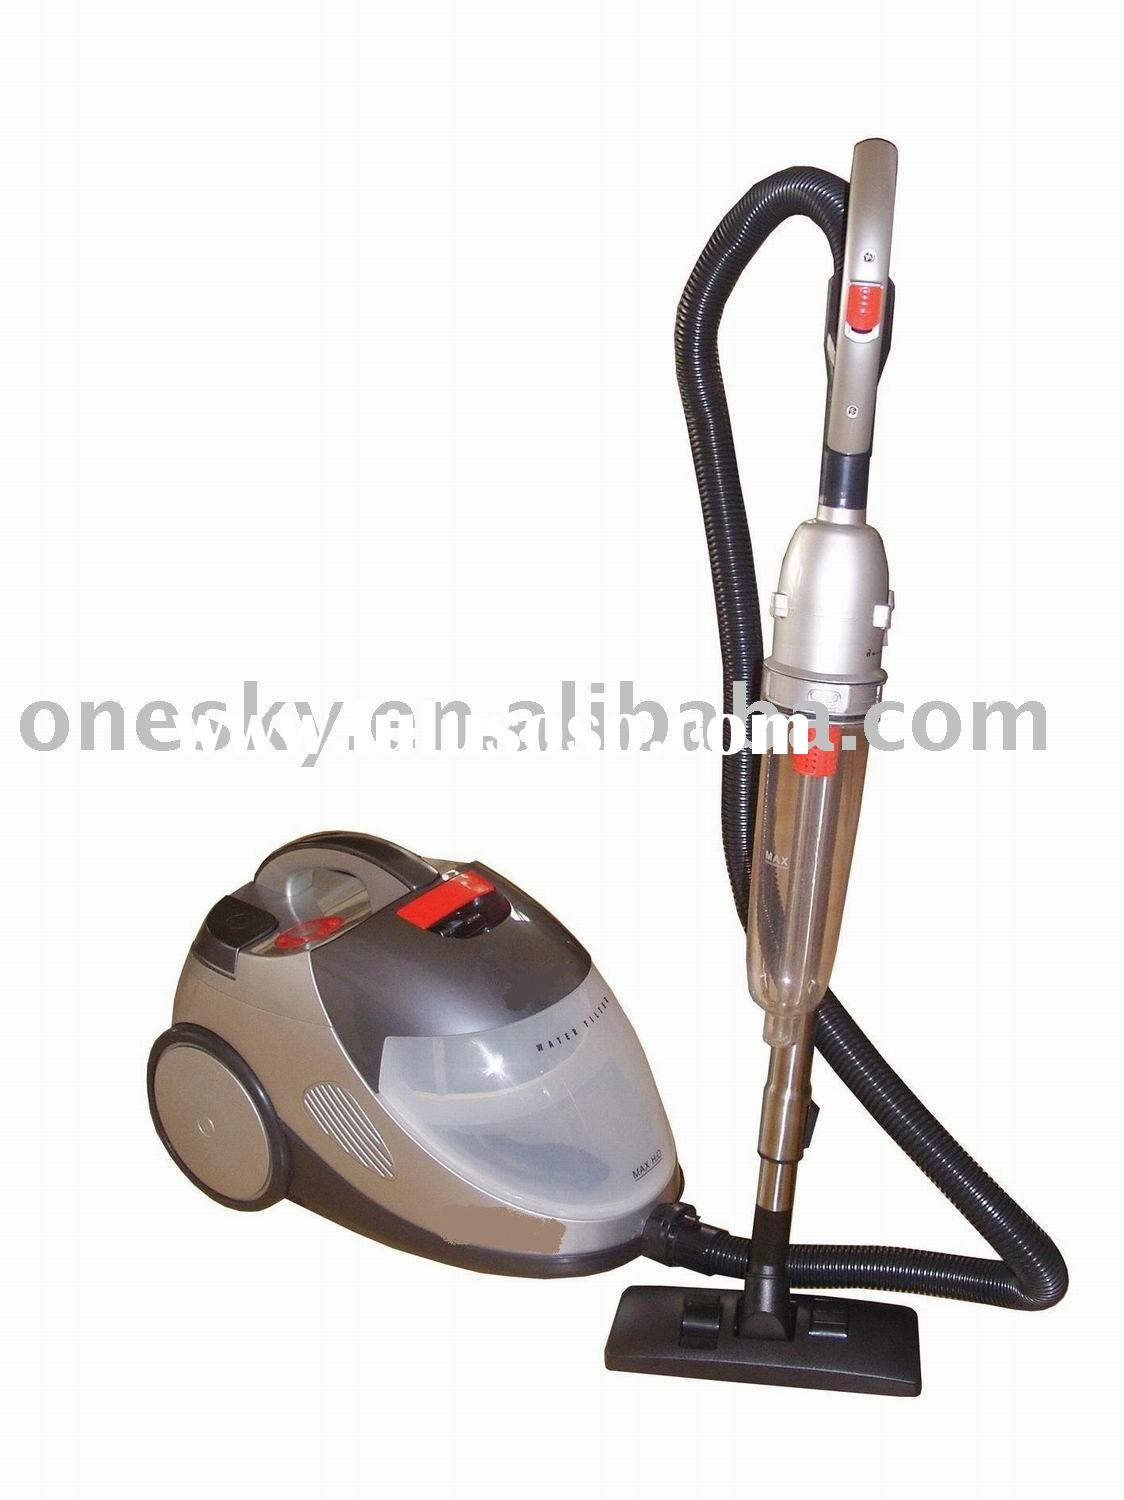 Water Filter Vacuum Cleaner For Wet and Dry Use With Modern Design model DV-4399